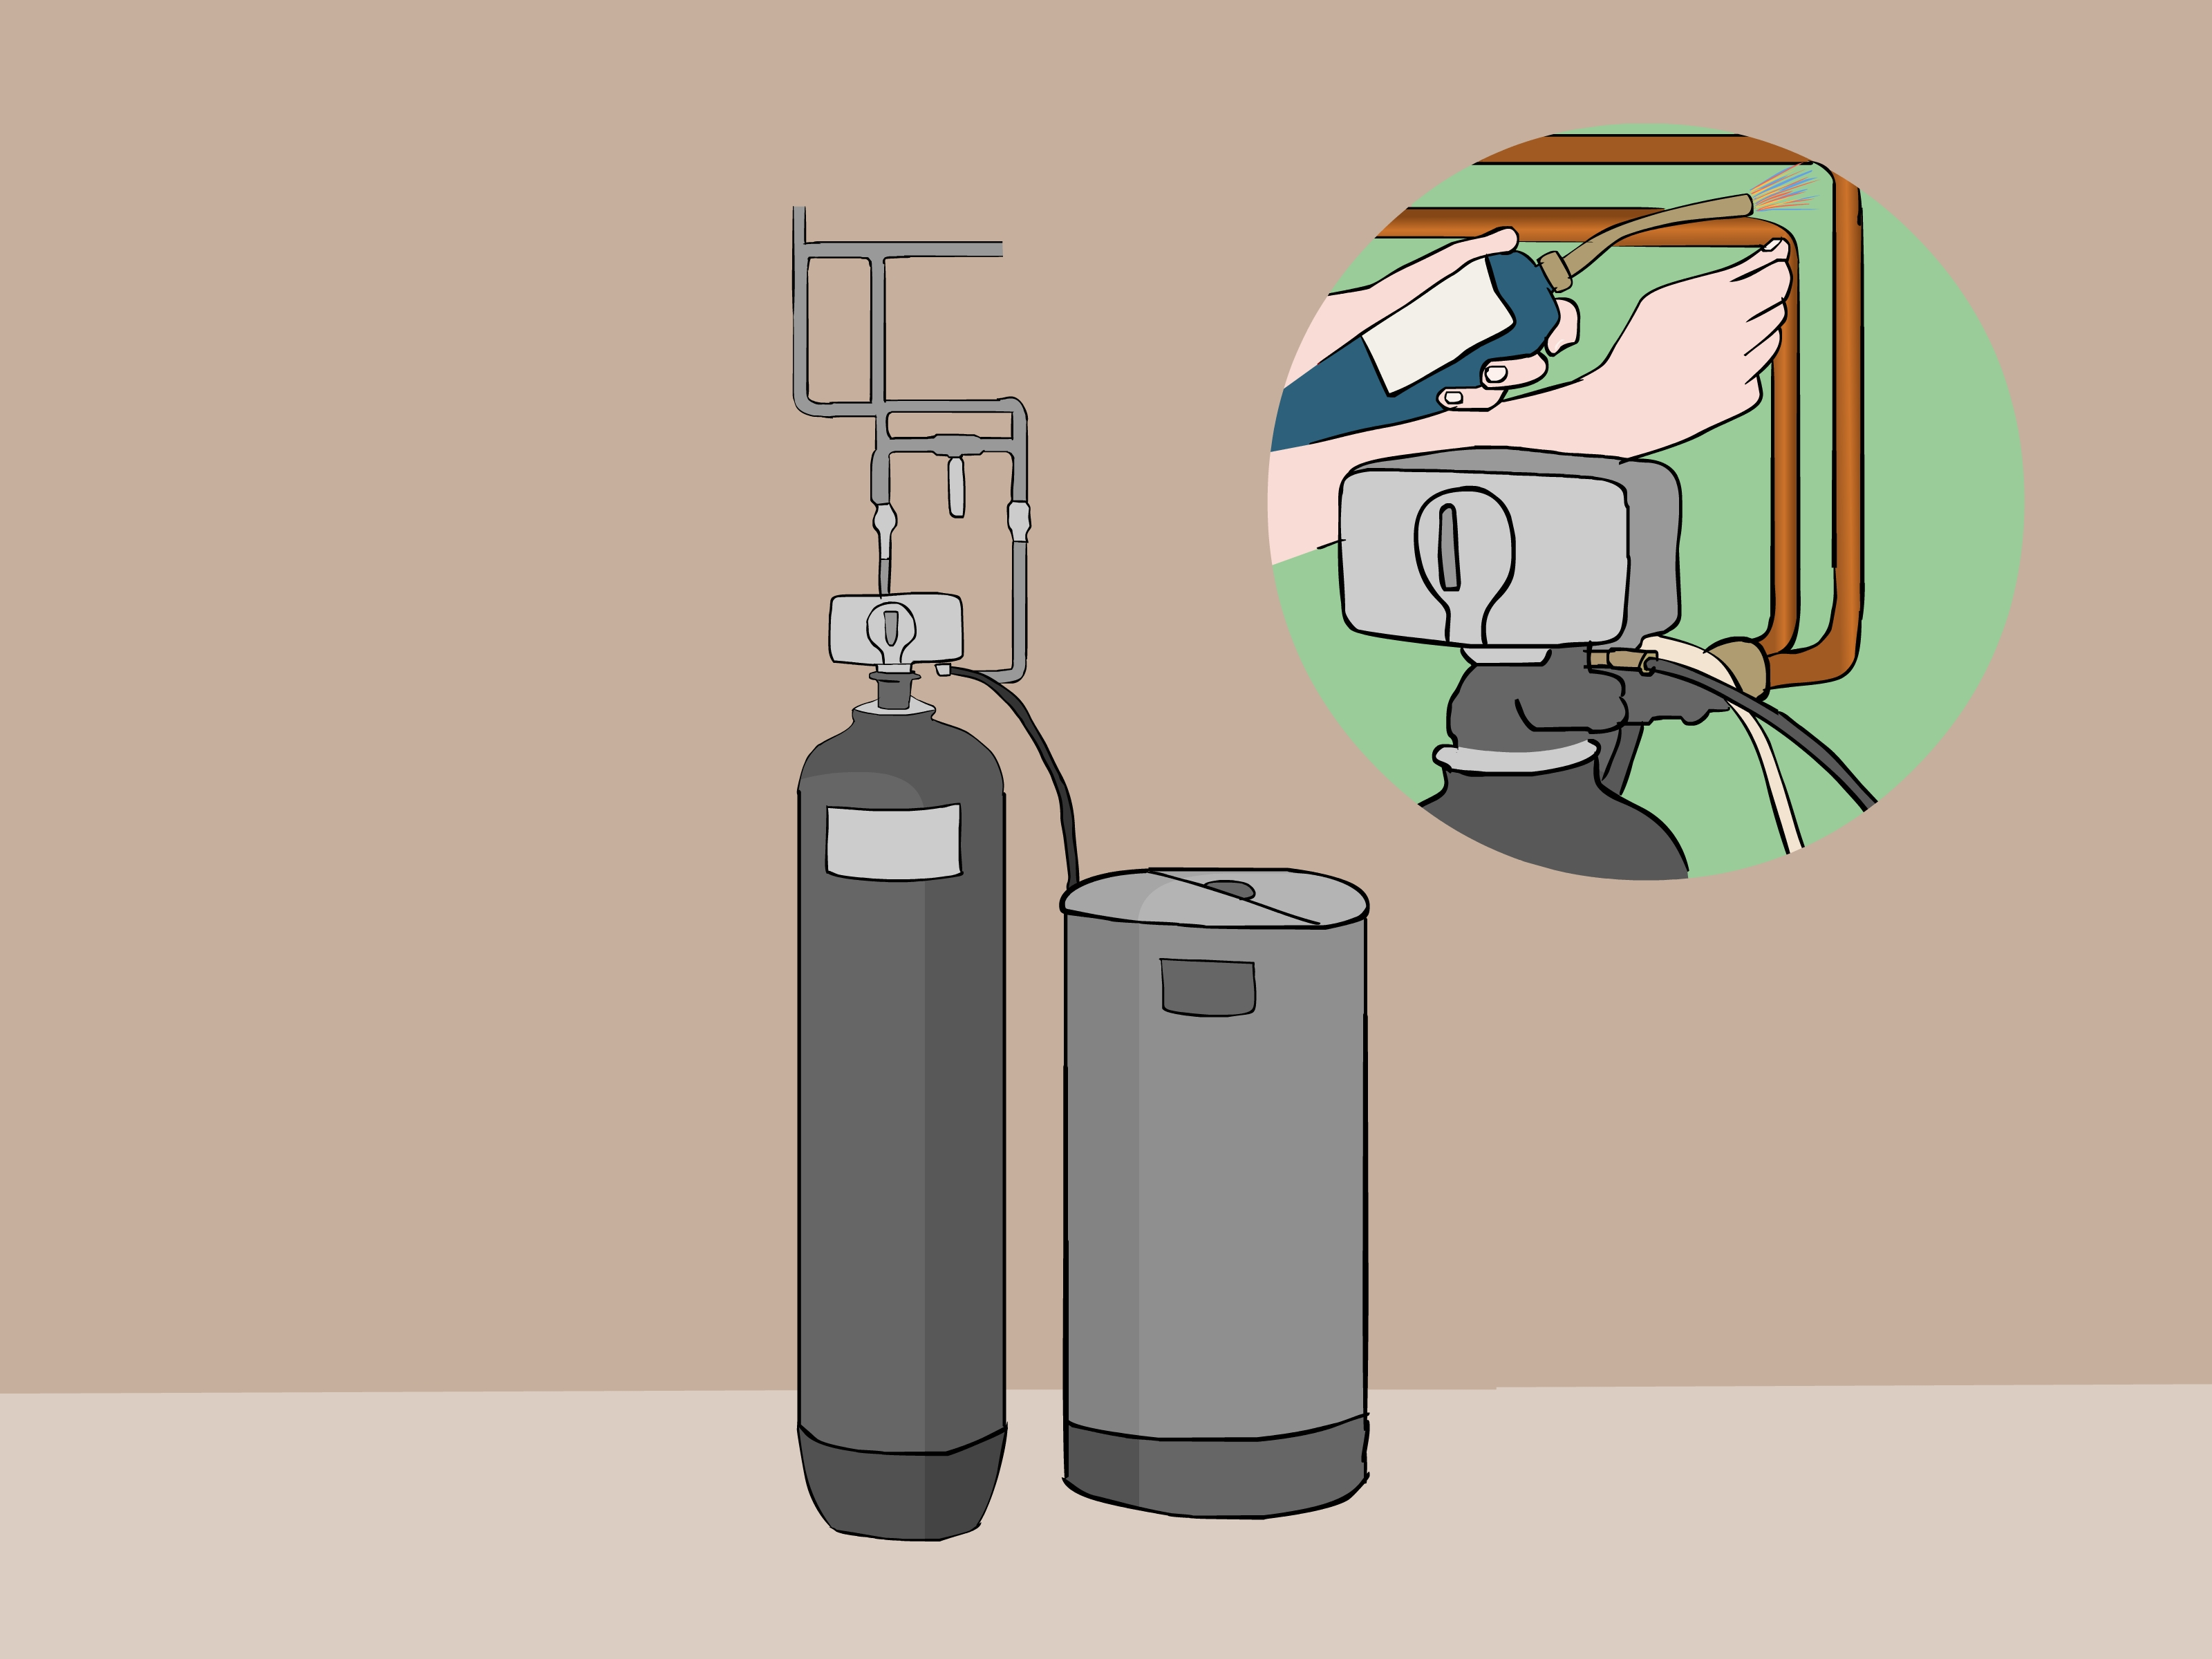 Water Softener Price How To Install A Water Softener With Pictures Wikihow